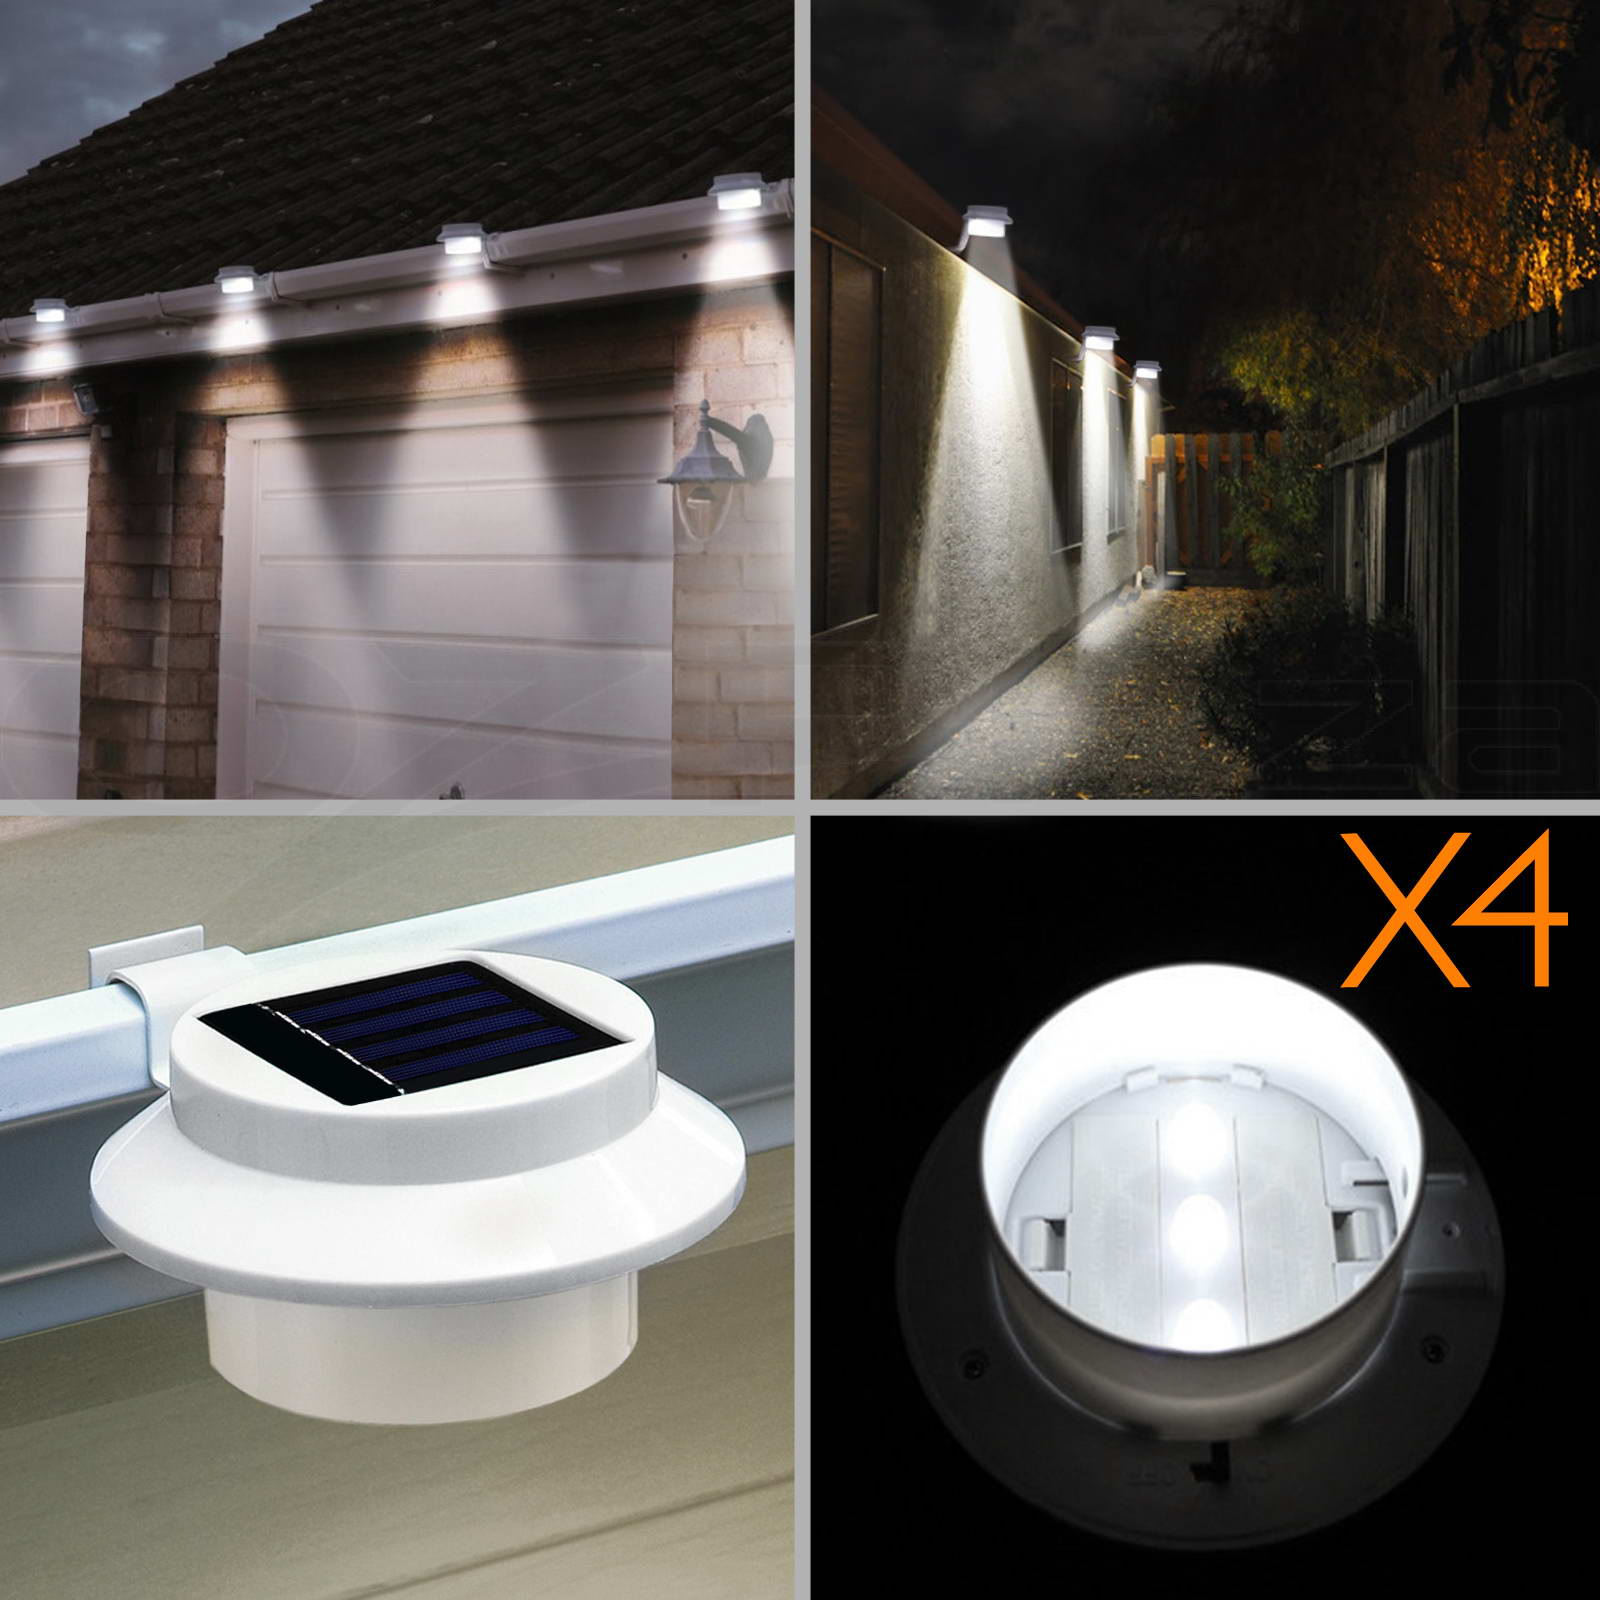 4x 3 Led Solar Powered Gutter Fence Lights Outdoor Garden Yard Wall Pathway Lamp Ebay